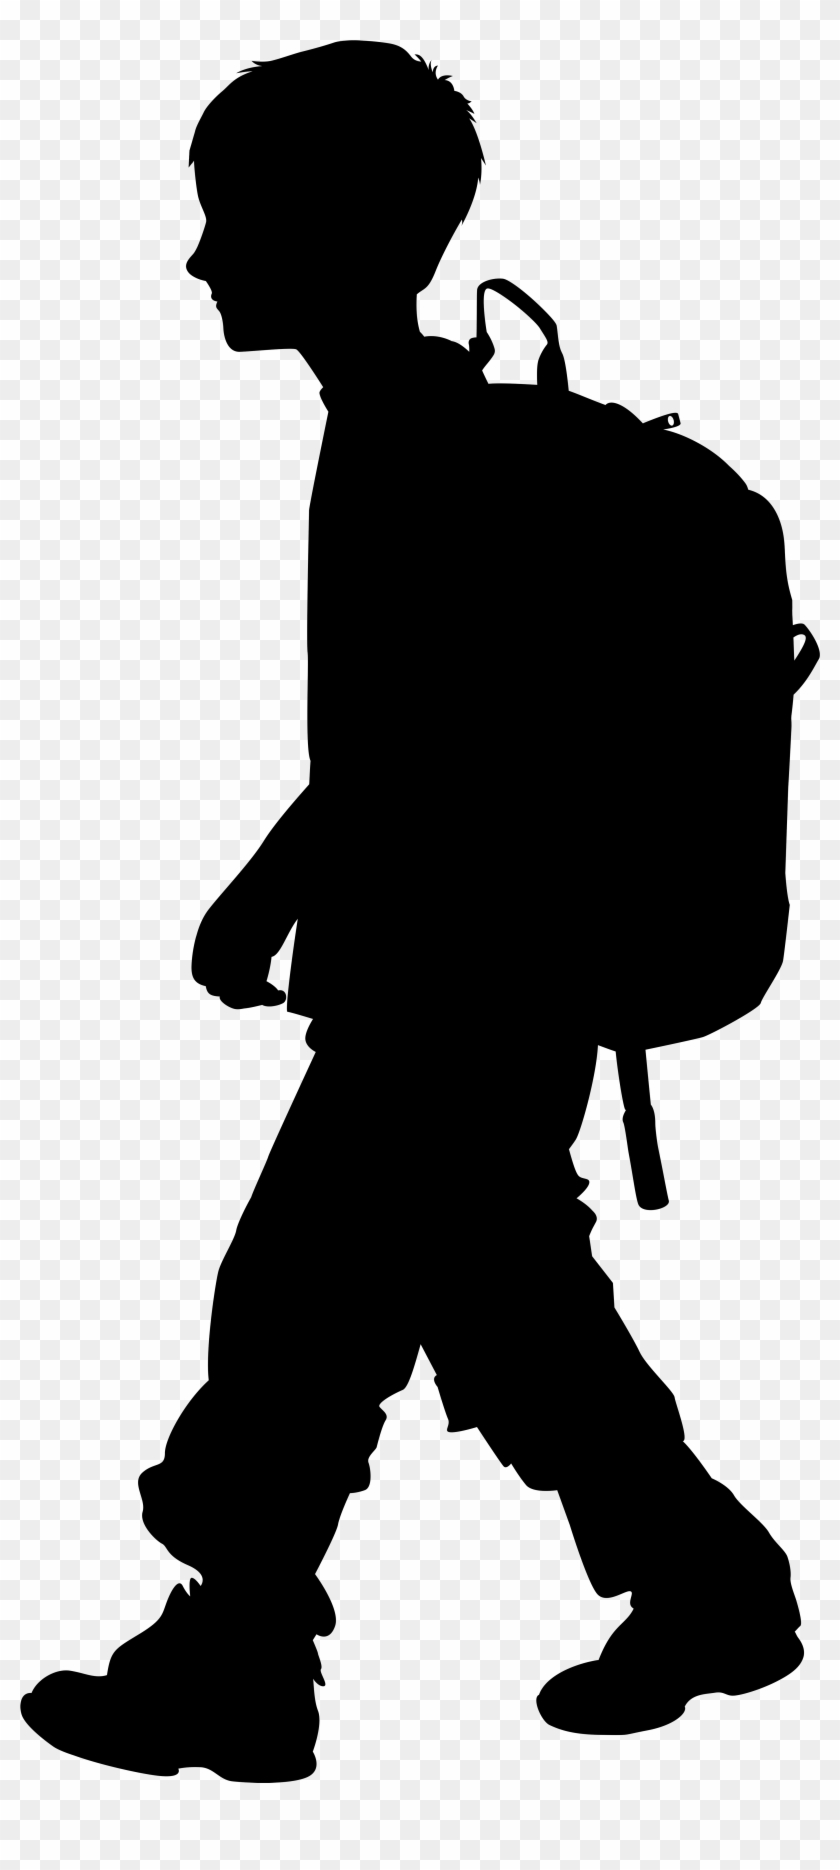 Boy With Backpack Silhouette Png Clip Art Imageu200b - Boy Silhouette Png #63878